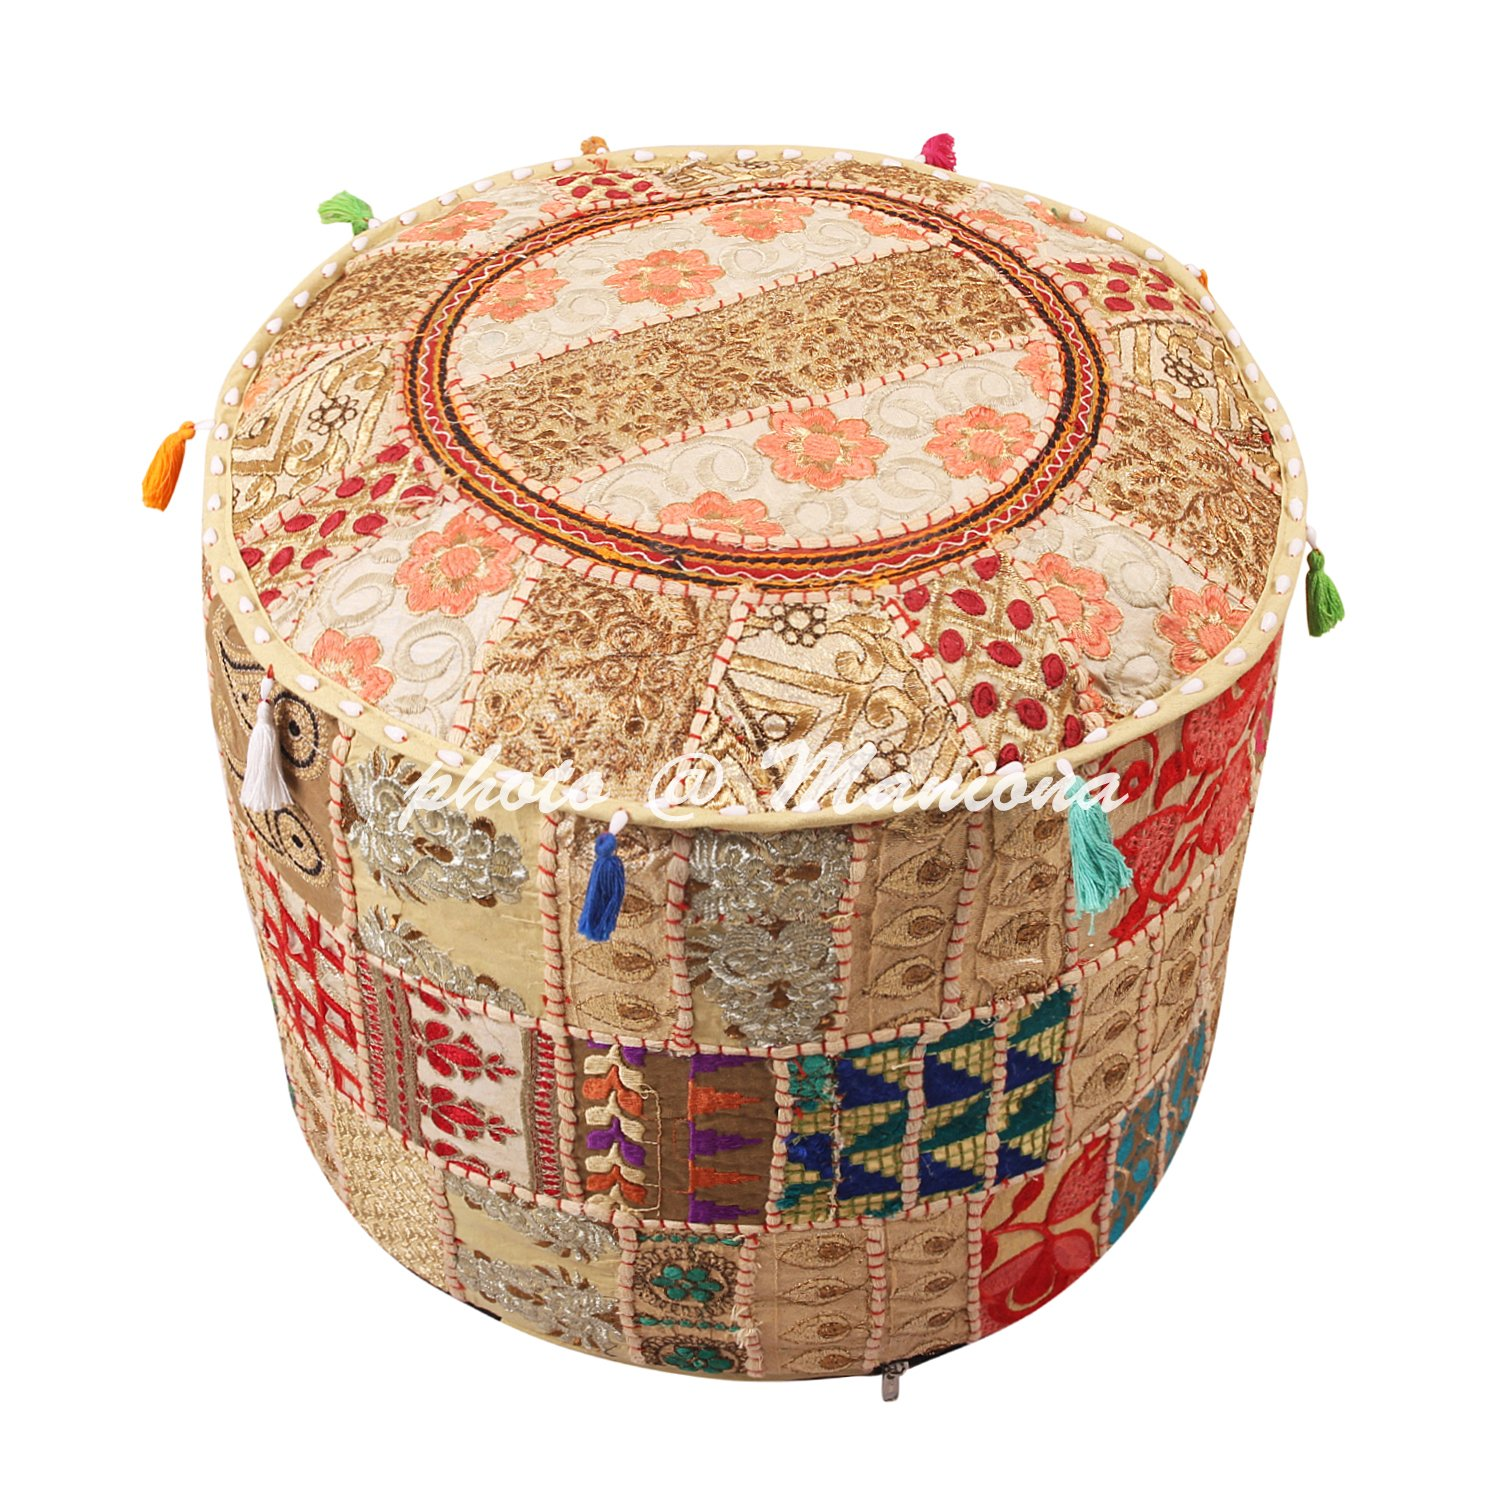 Maniona 18 Round Ethnic Cotton Patchwork Embroidered Ottoman Stool Pouf Cover Beige Floral Bean Bag Pouf Foot Rest Indian Decor ManionaCrafts